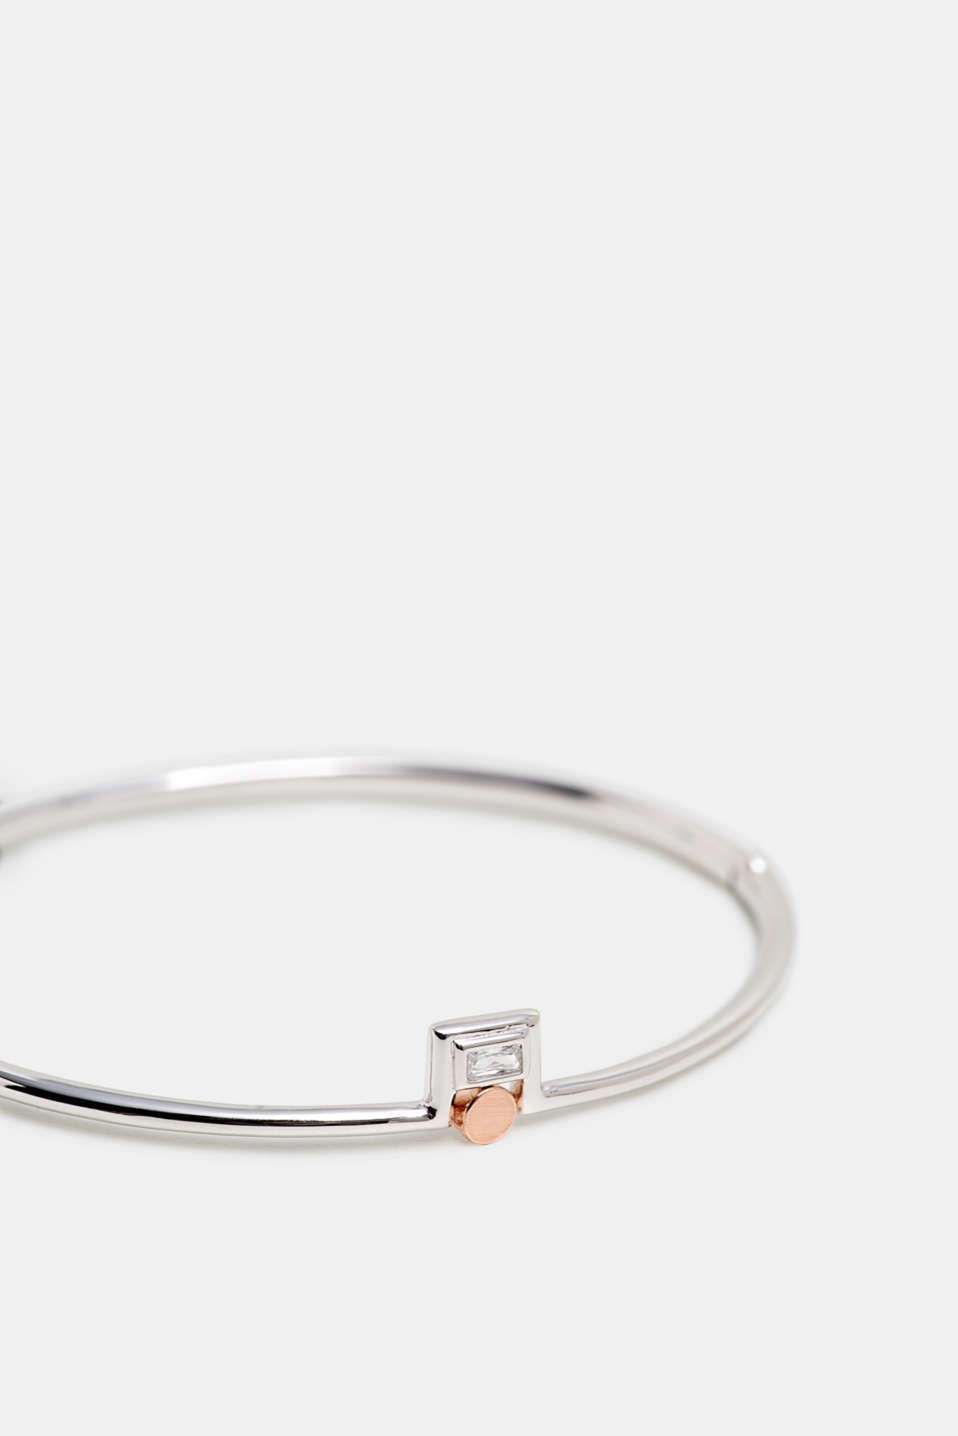 Bangle with zirconia, sterling silver, SILVER, detail image number 1